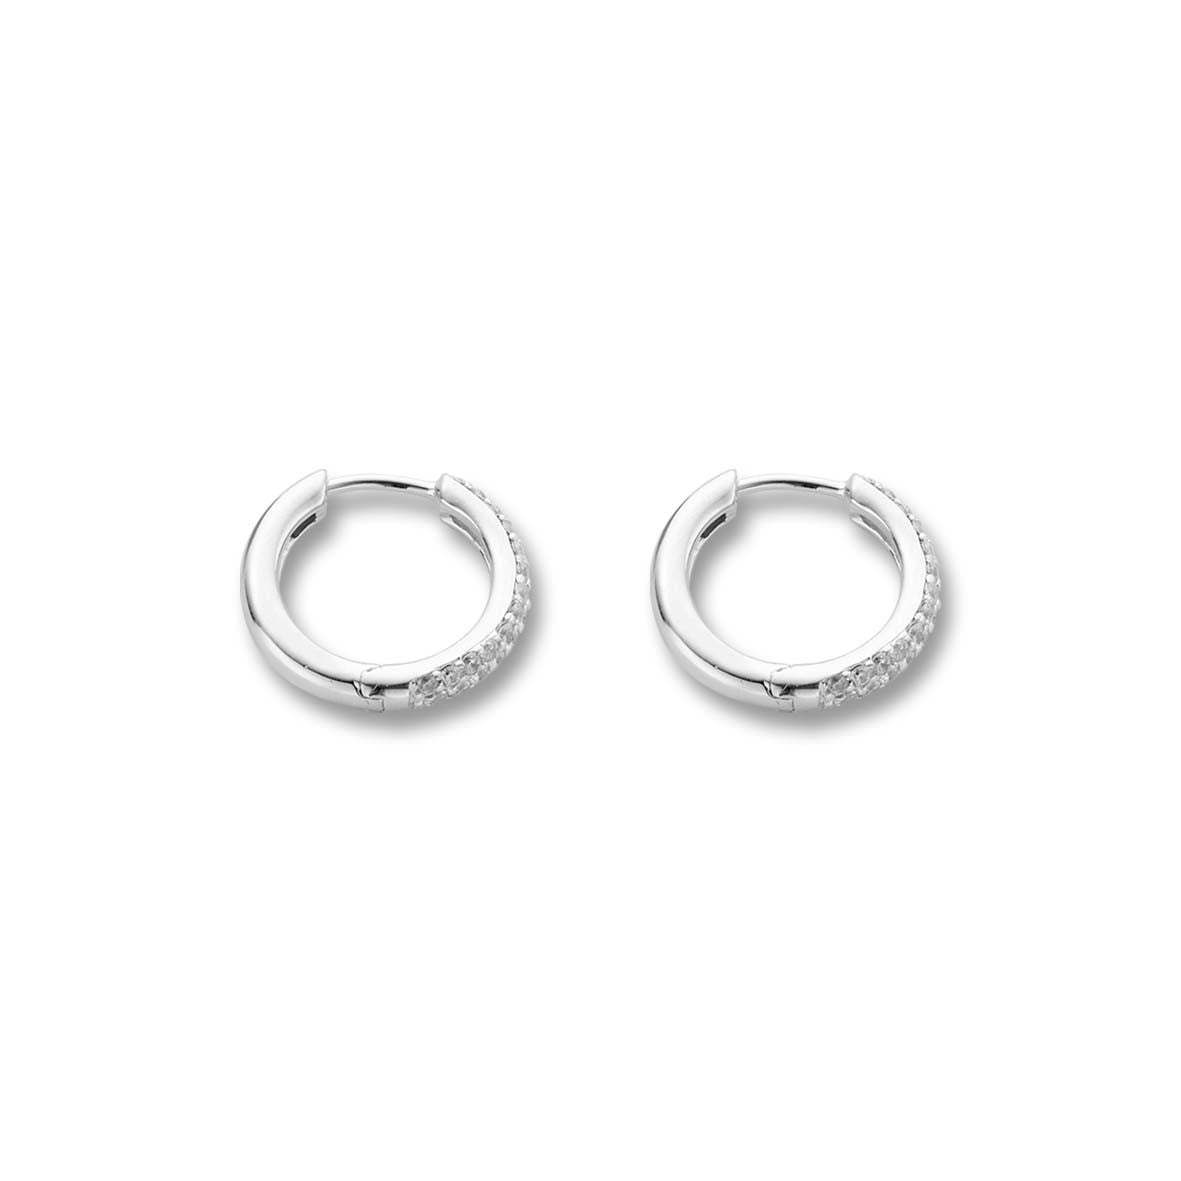 Ti Sento Earrings Hoop Silver And White Cubic Zirconia Pave Set 2 Row